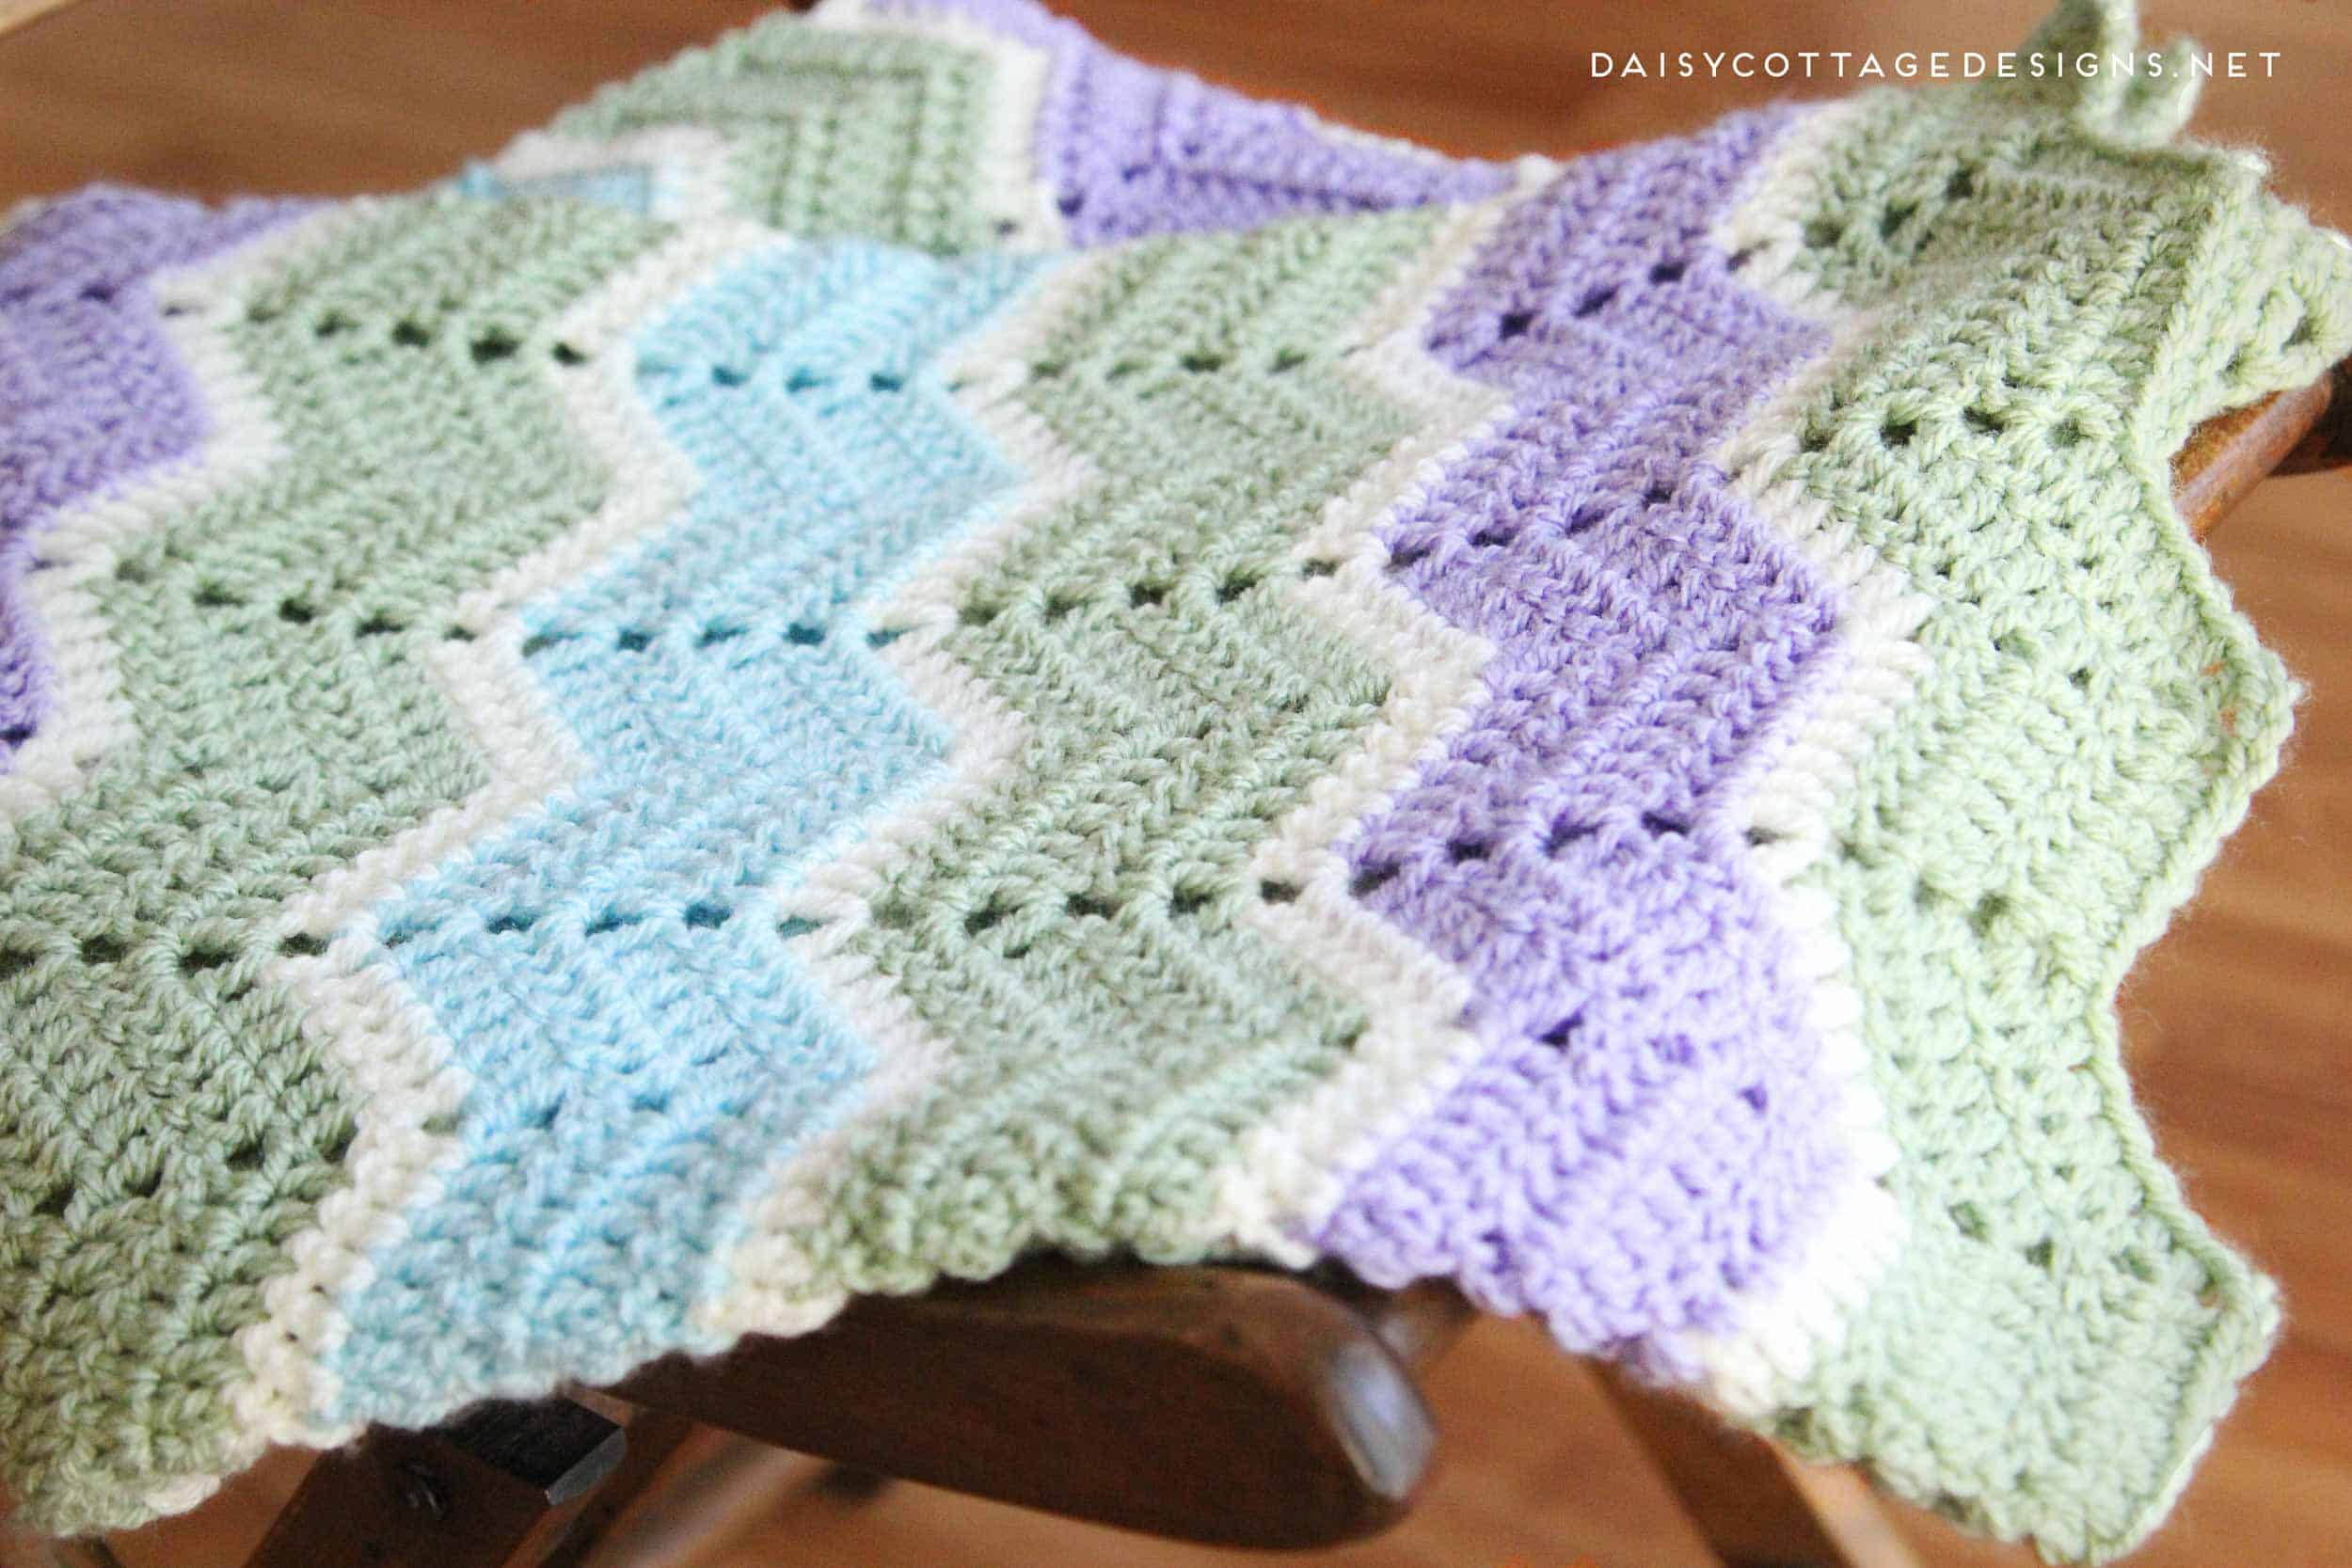 Easy Chevron Blanket Crochet Pattern - Daisy Cottage Designs